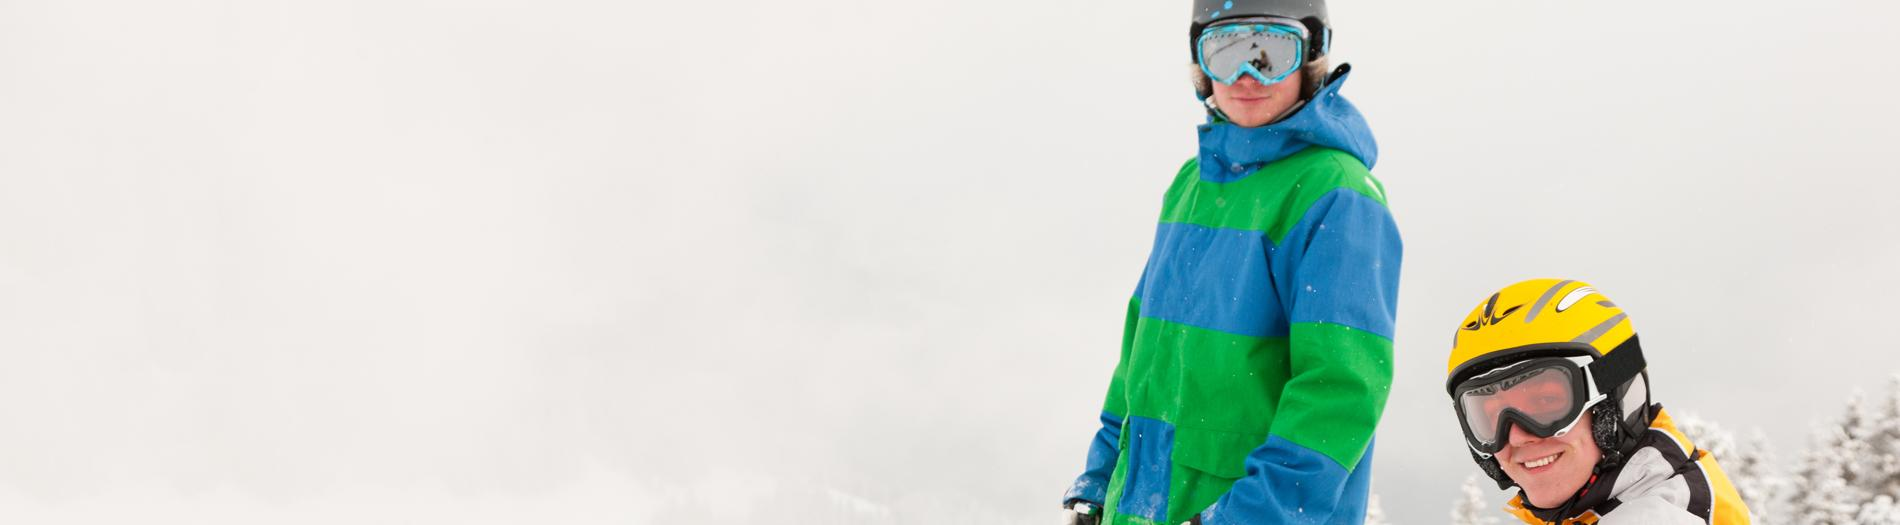 CHLA-Safety-Tips-Skiing-Snowboarding-HP-Banner-Desktop.jpg